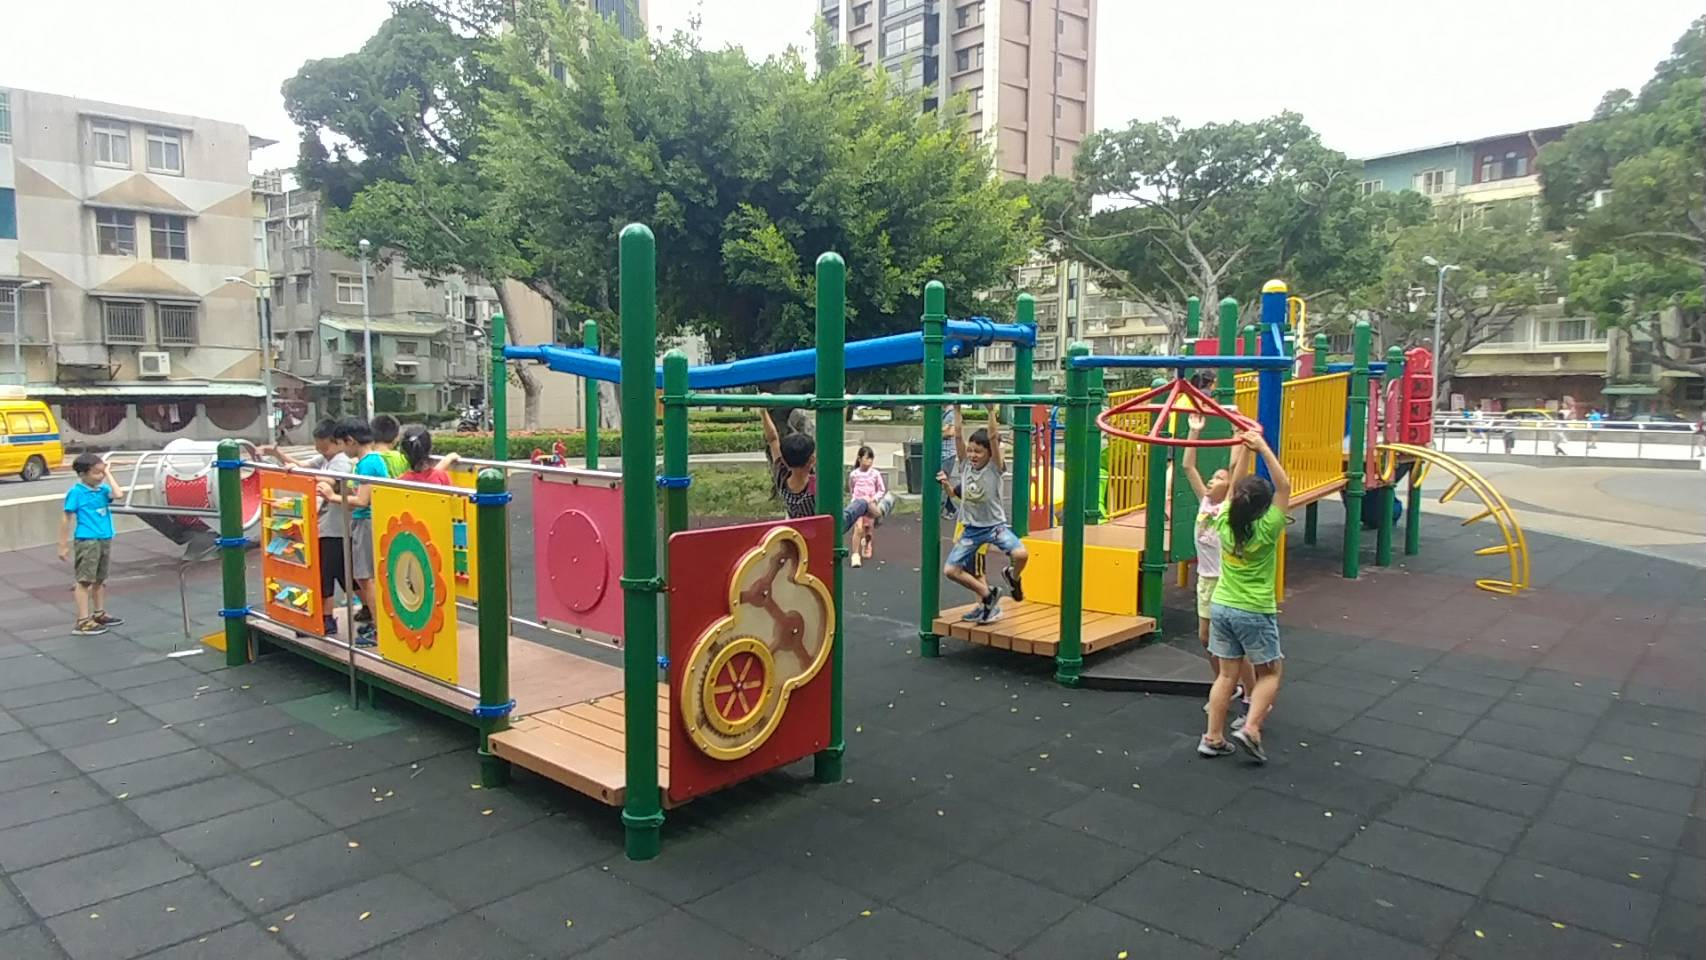 One of the inclusive playgrounds in Beitou District